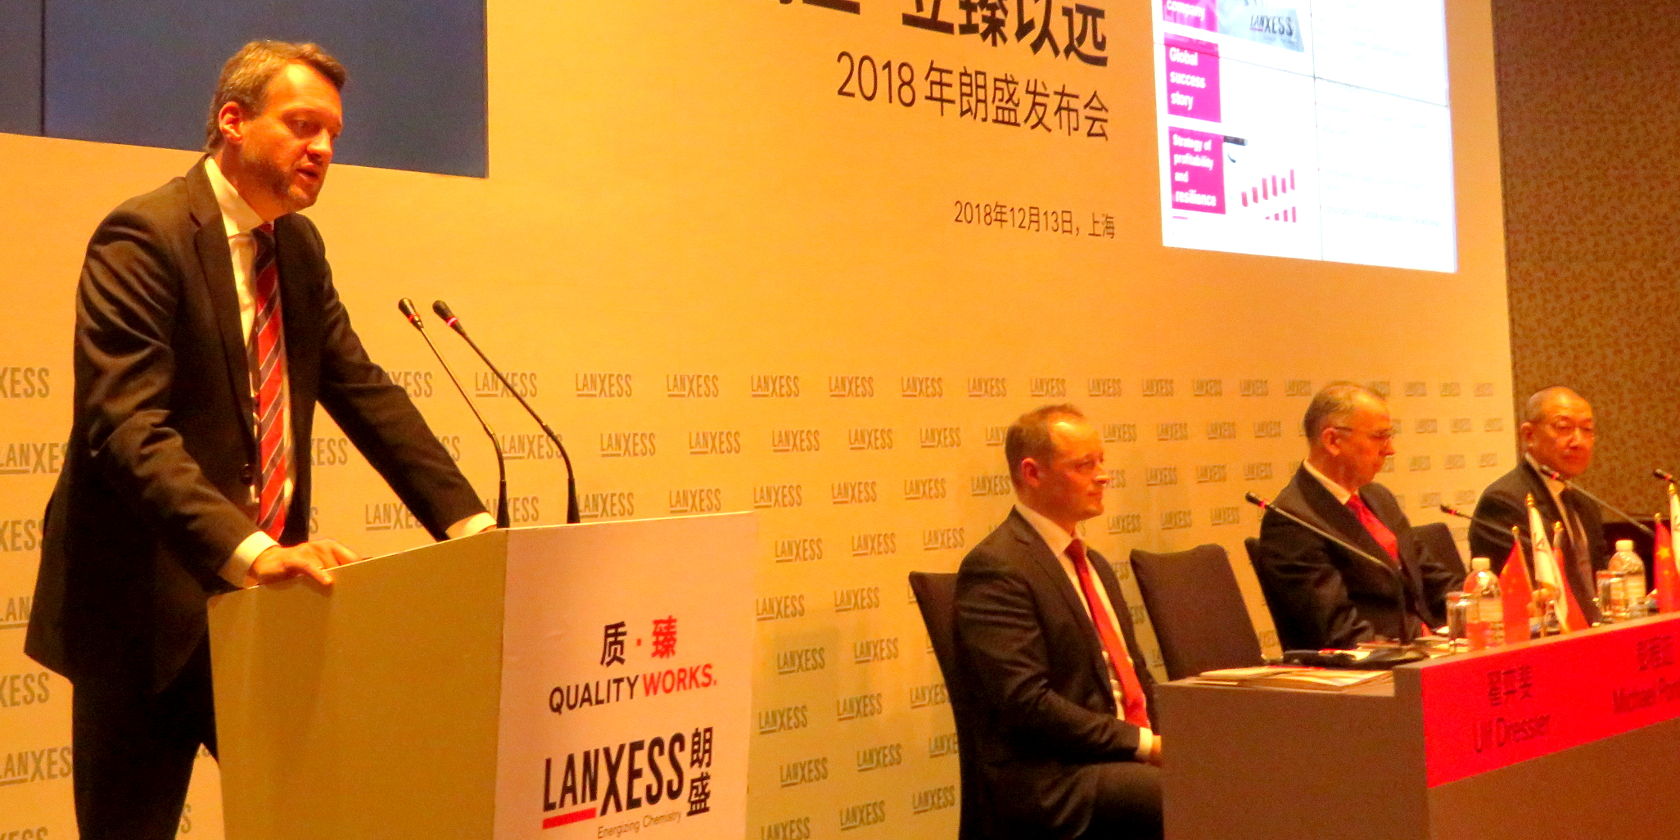 Lanxess to Invest 250 Million Euros in Asia–Pacific